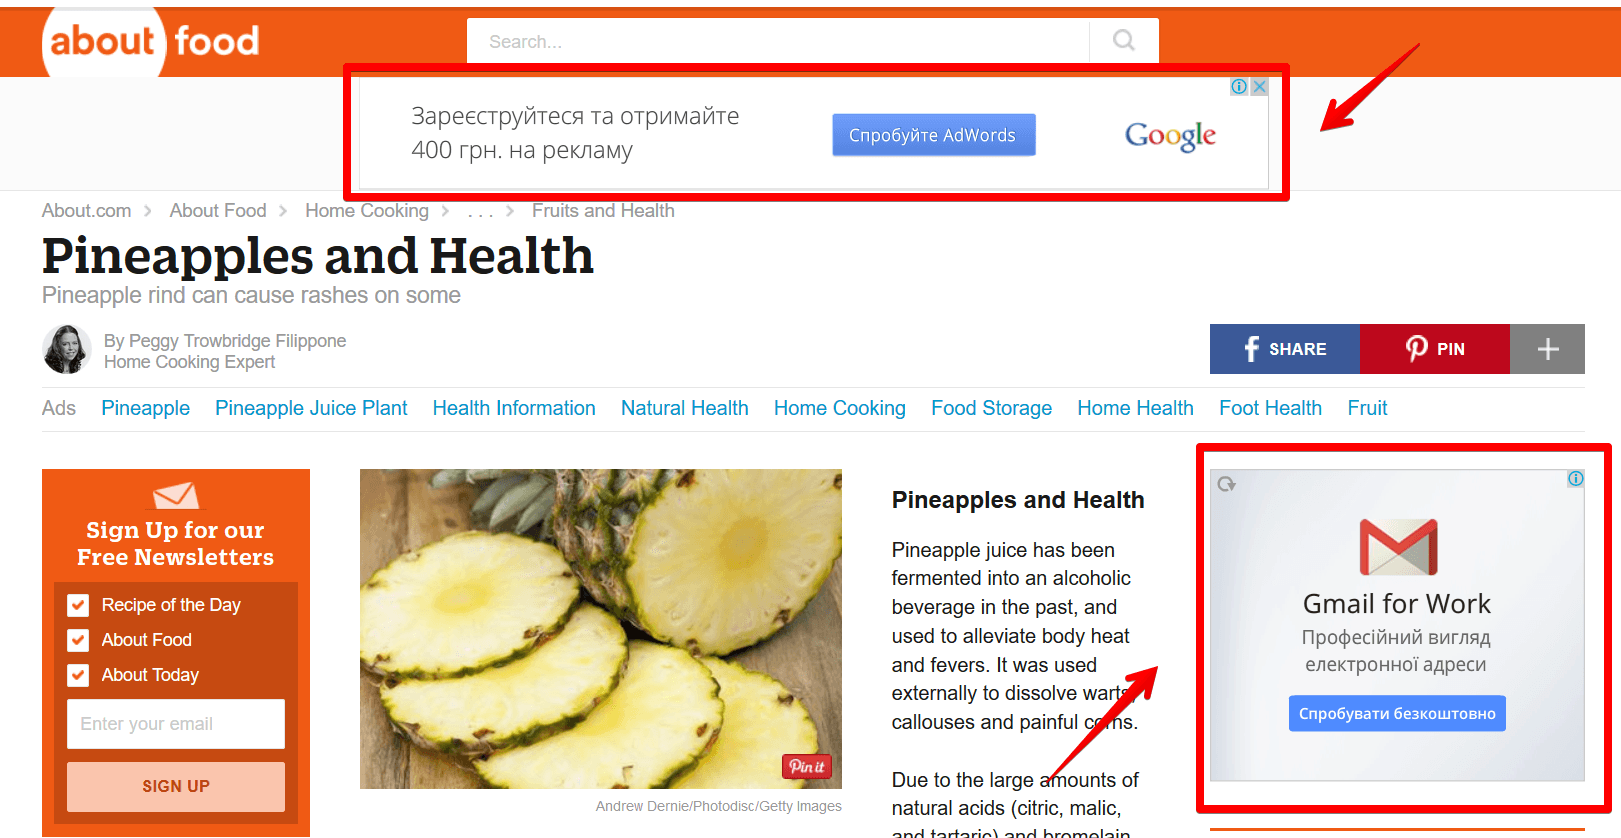 Pineapples-and-Health-Mozilla-Firefox-2015-08-20-15.28.42 Google AdWords